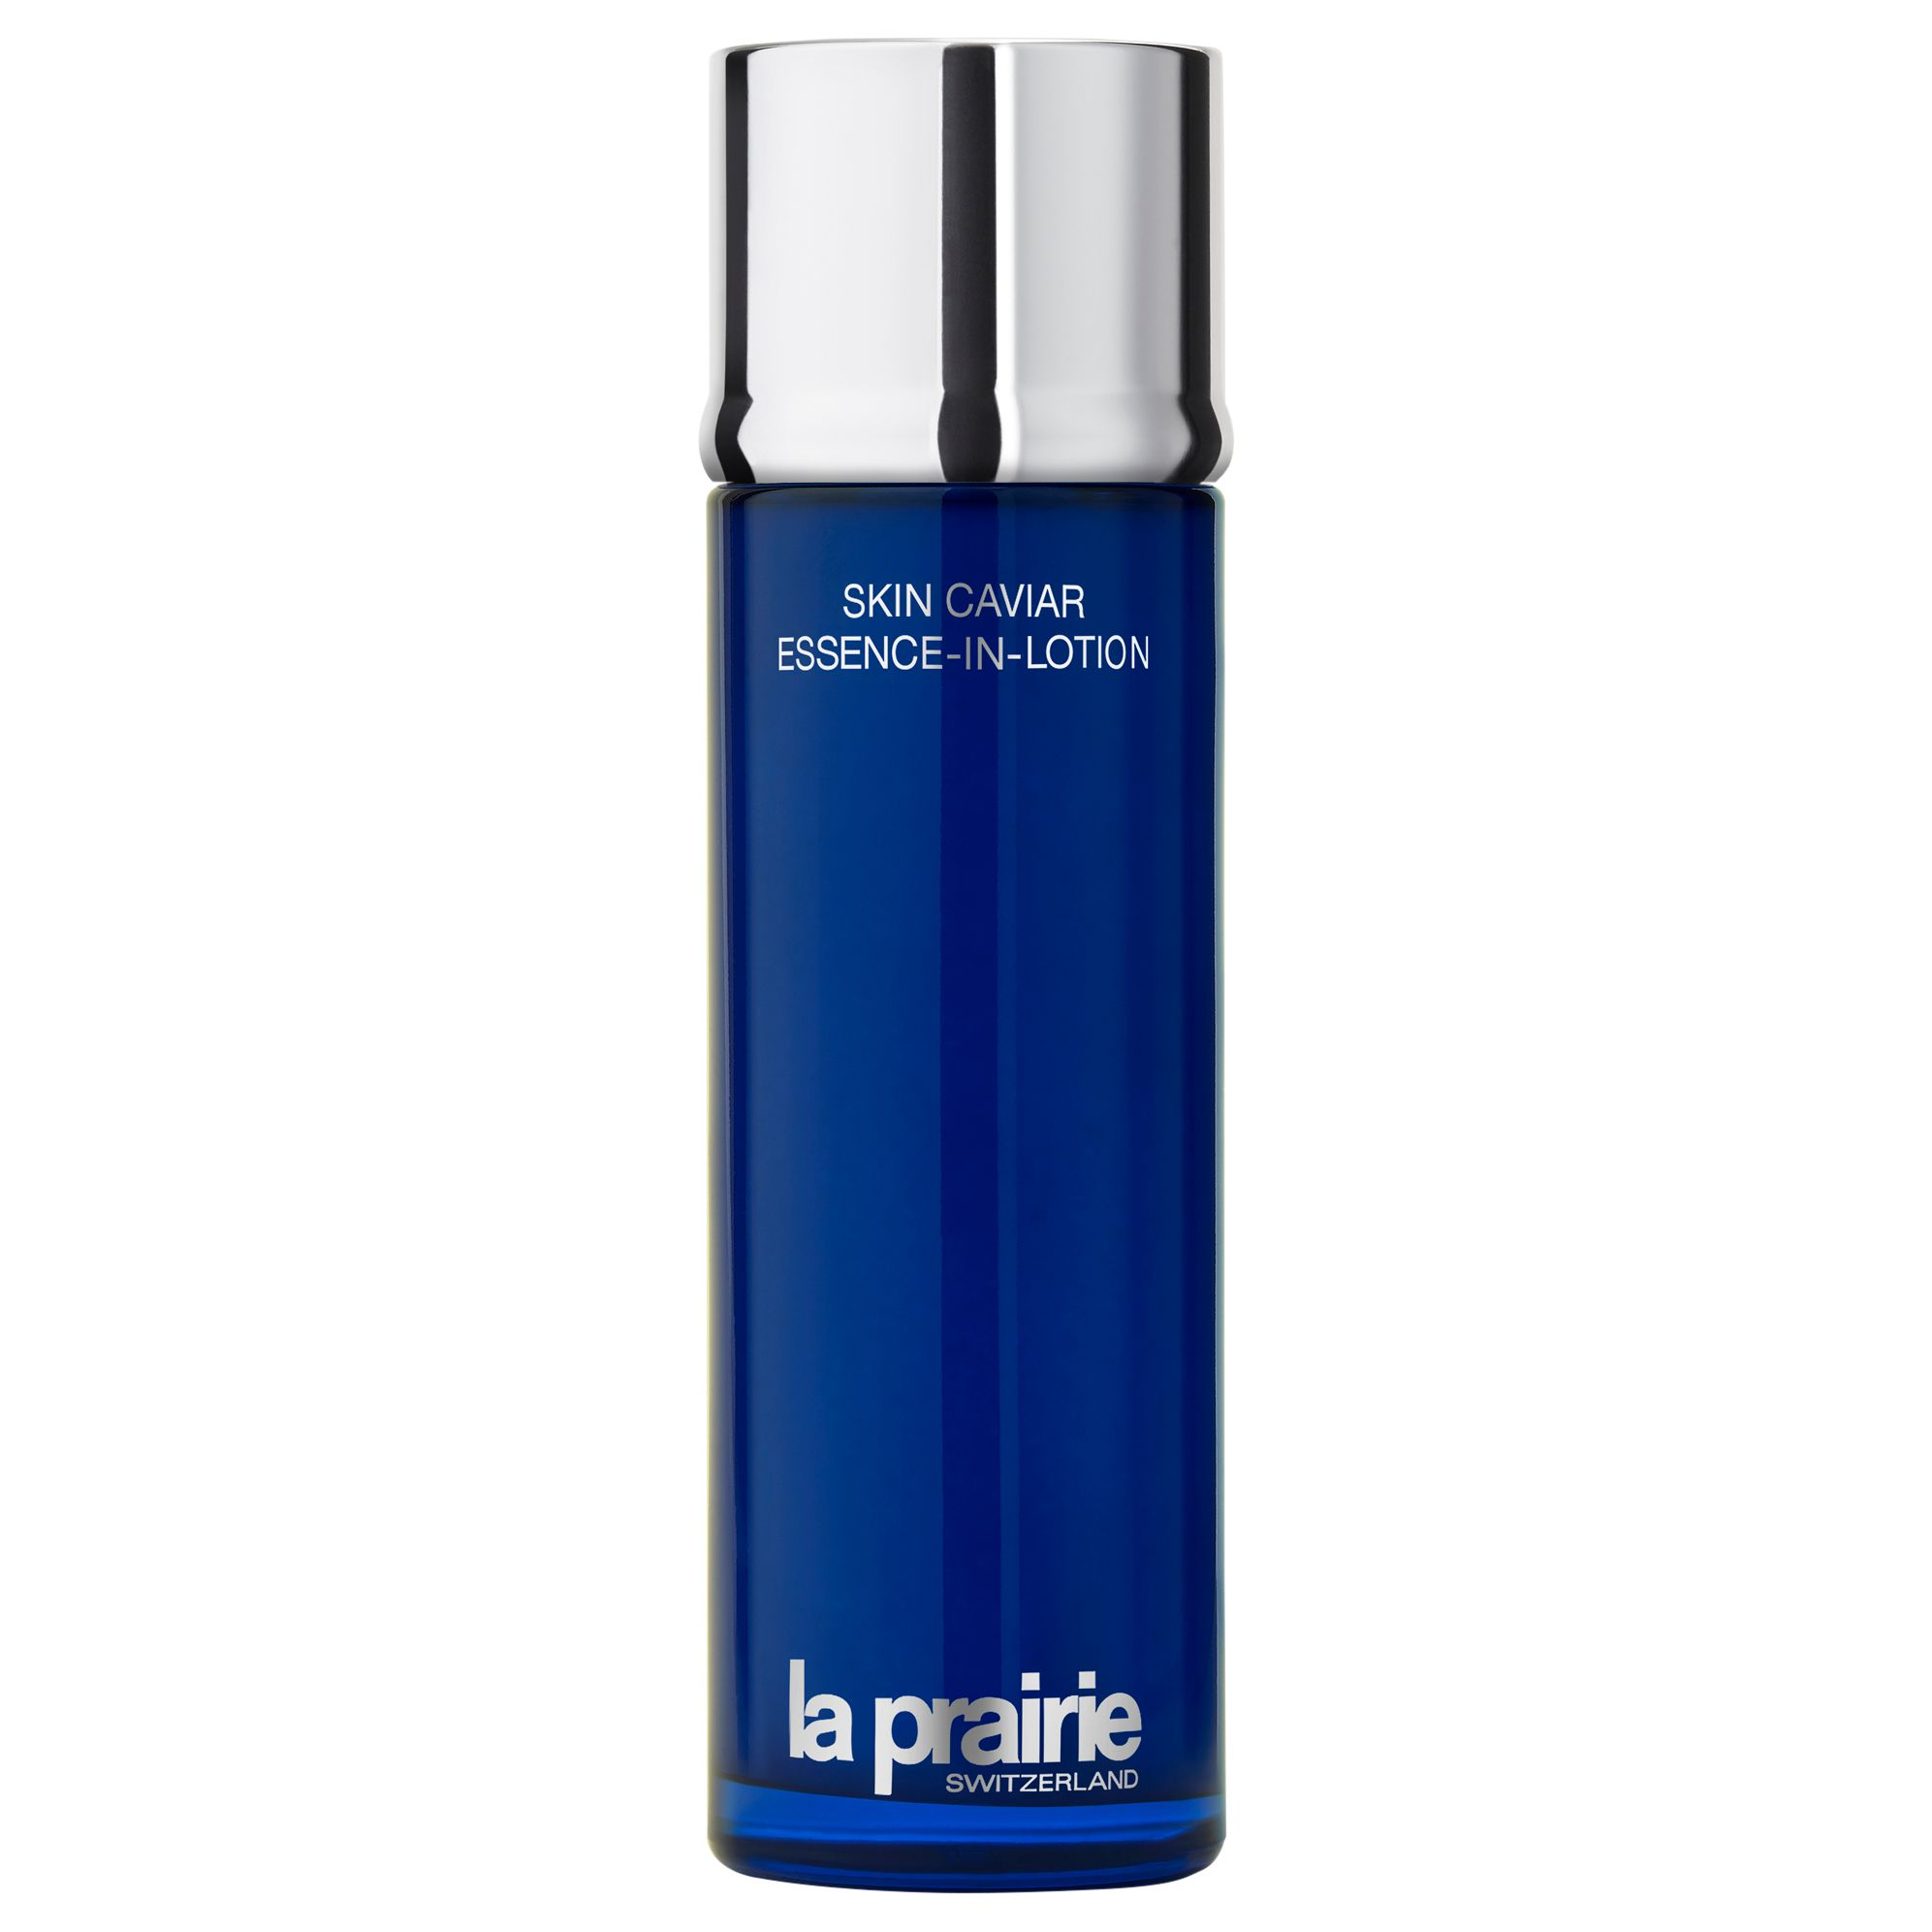 La Prairie La Prairie Skin Caviar Essence-in-Lotion, 150ml